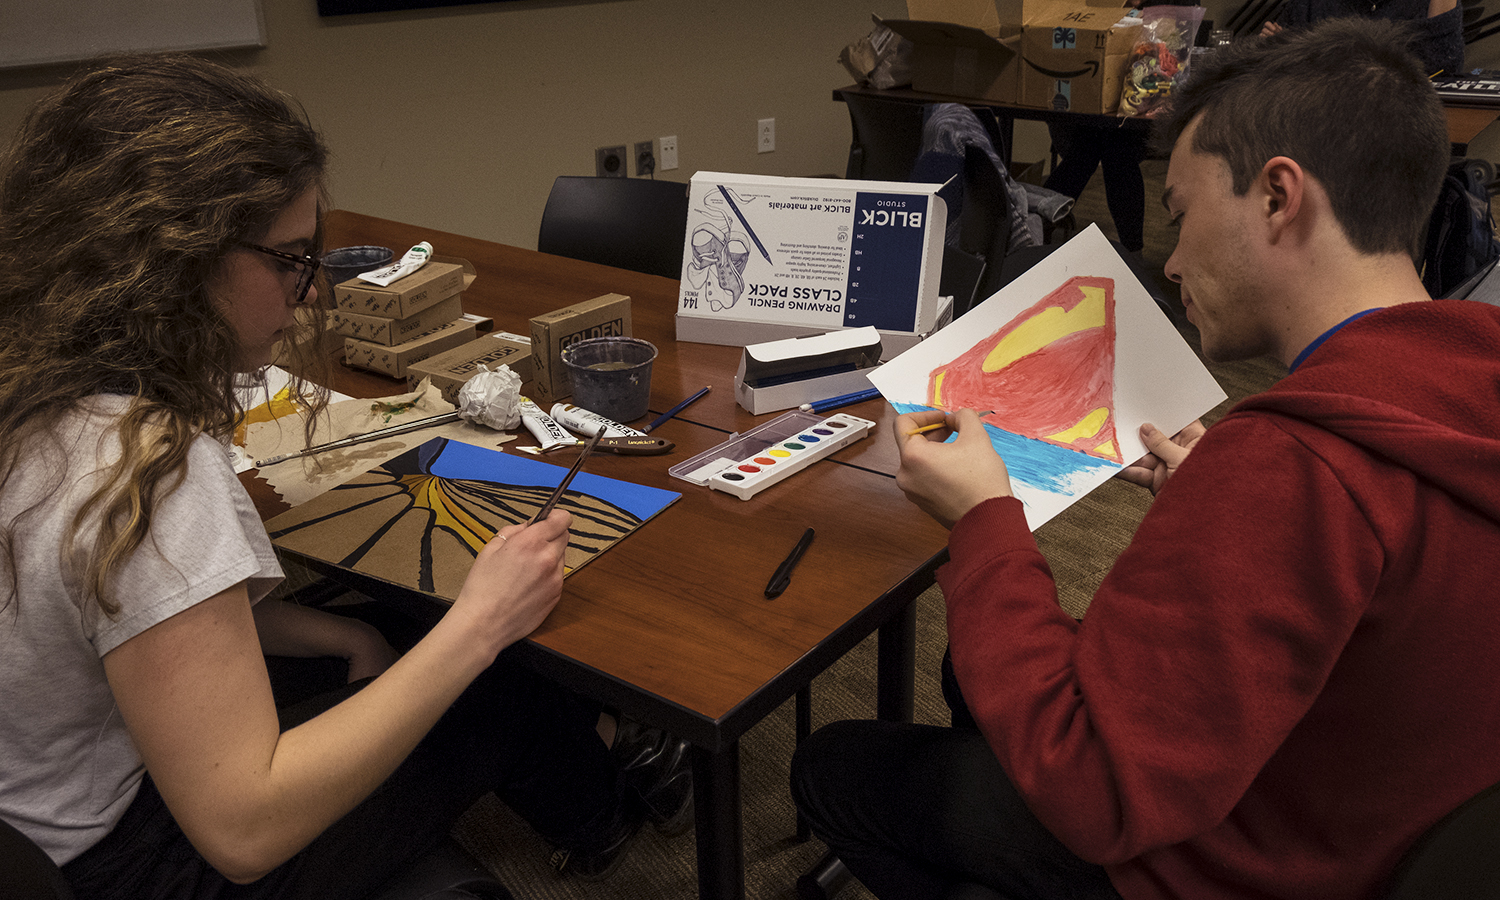 Ainsley Rhodes 'X and Austin Kennie 'X draw during an open student event sponsored by the Art + Design Collective.